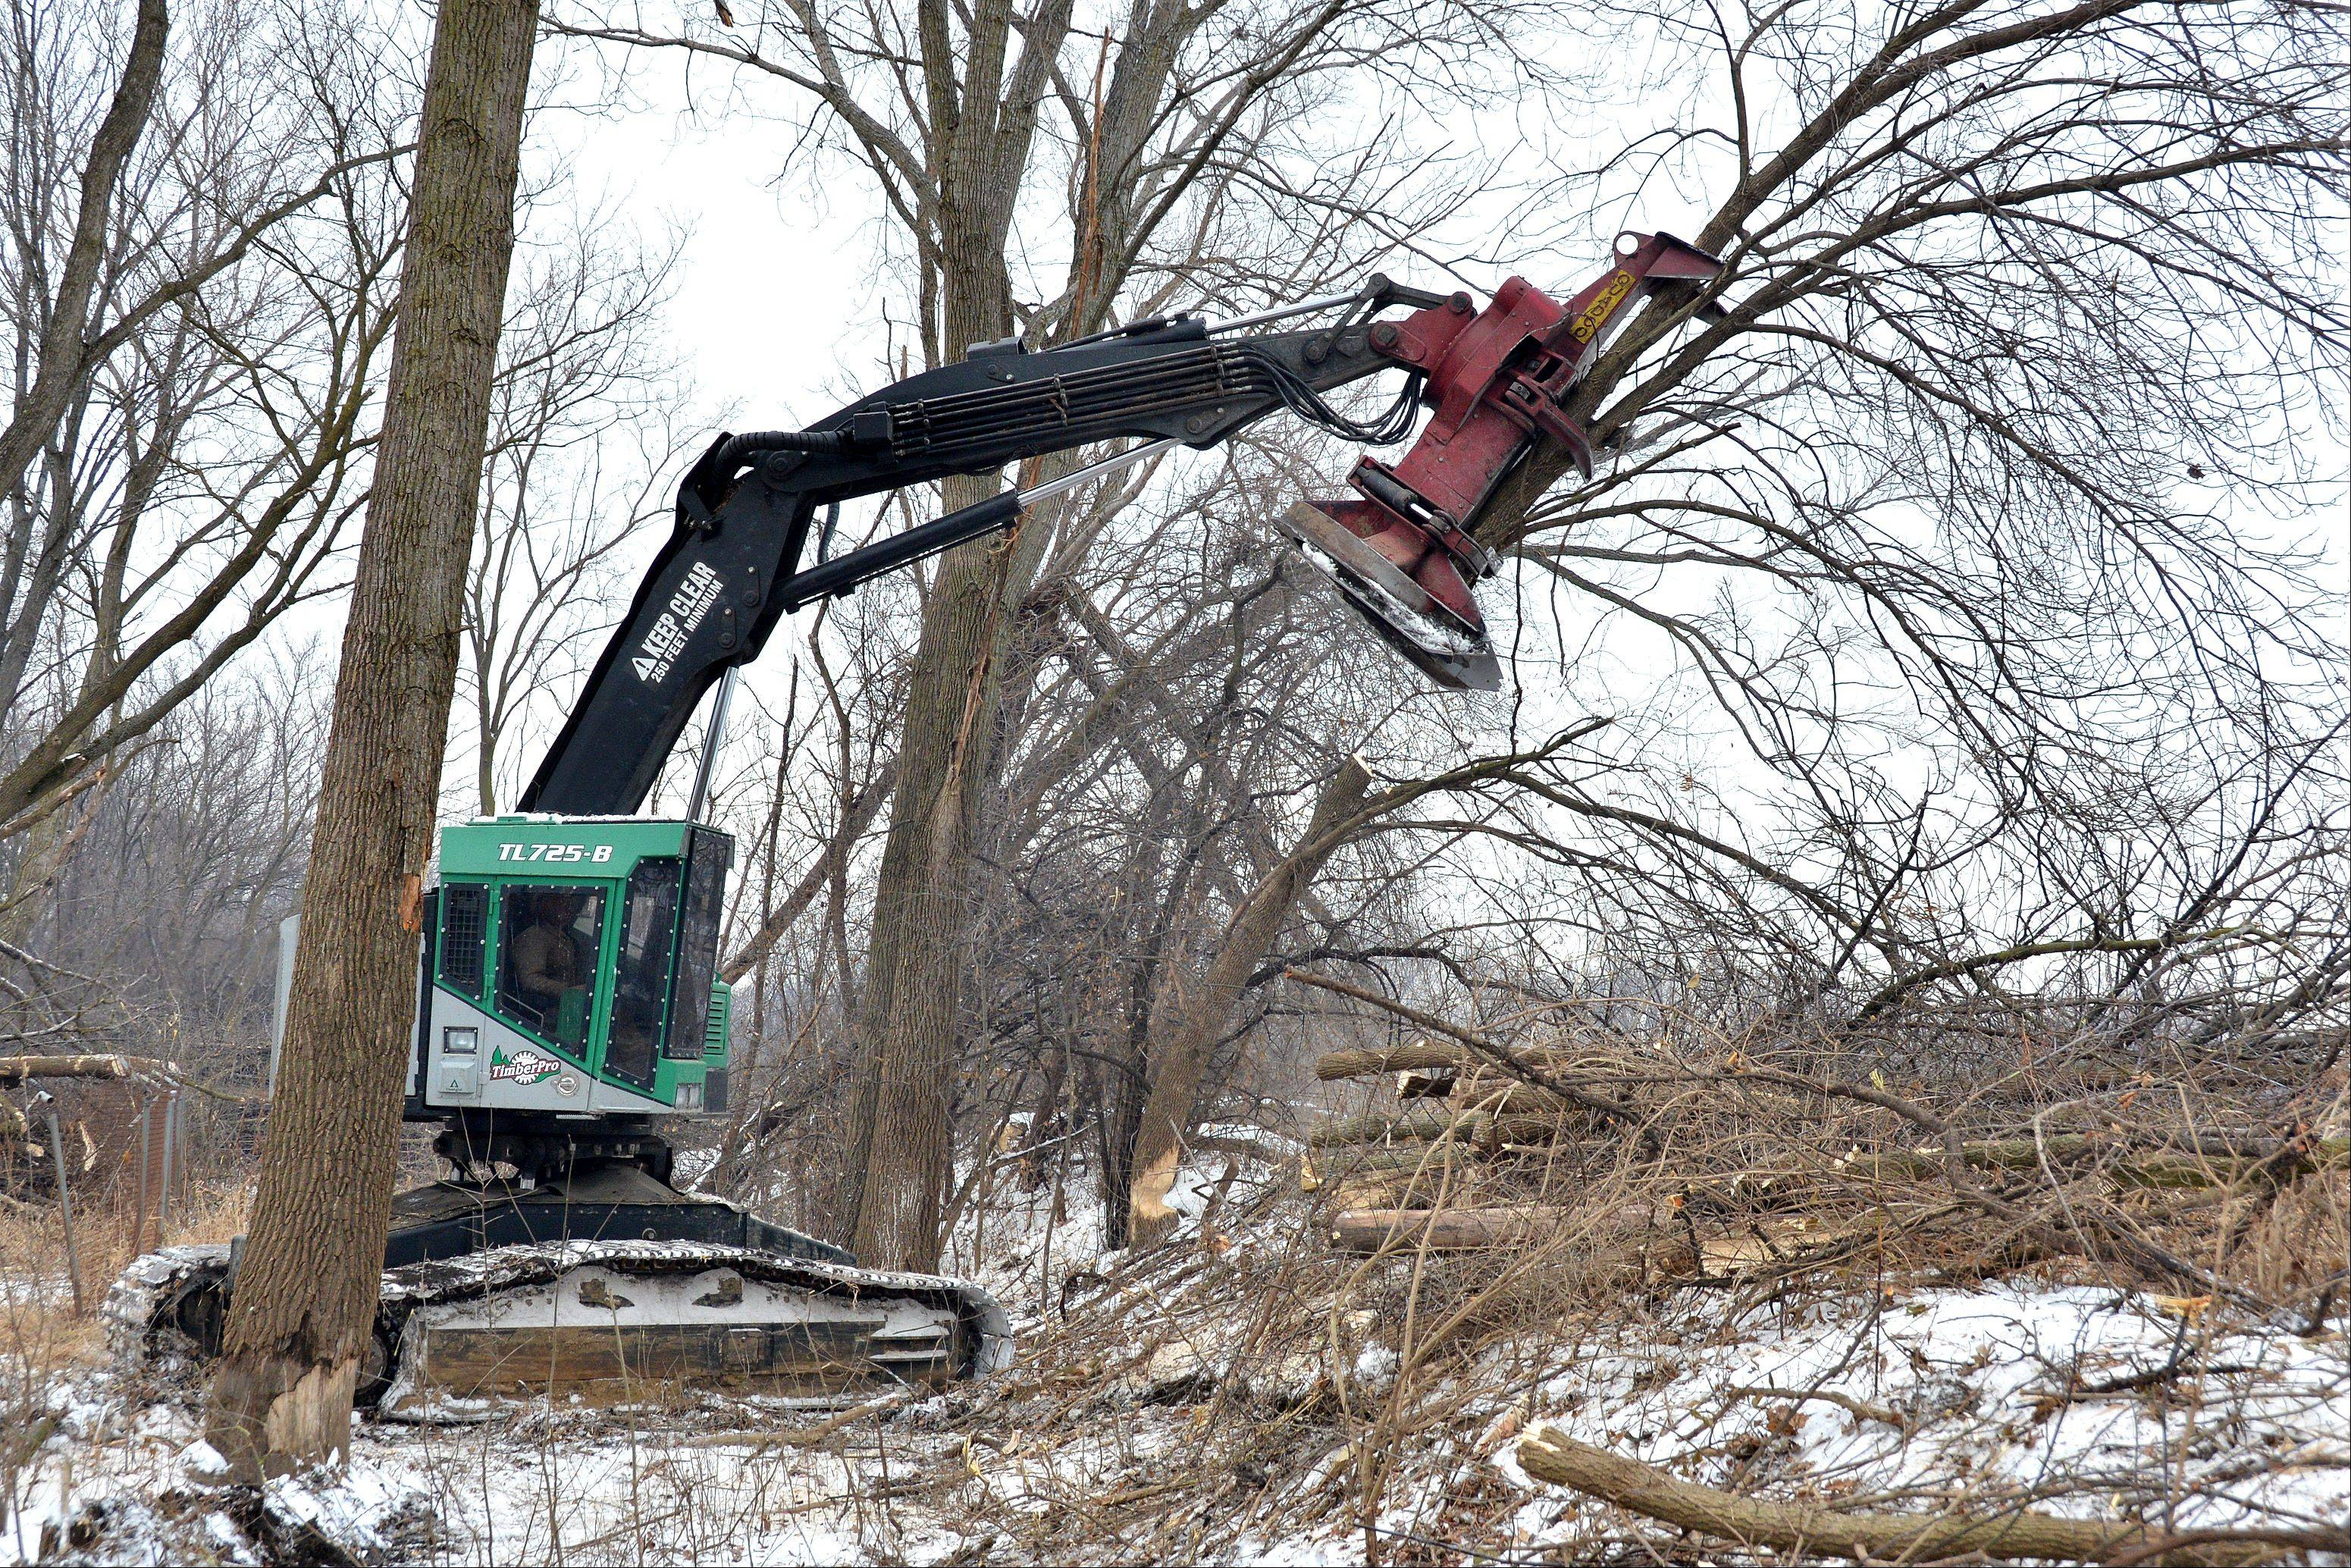 In another area of the preserve, a machine with a large rotary saw is slicing trees in half and tossing them on the ground like matchsticks. This is being done to clear out invasive plants and trees near the river.